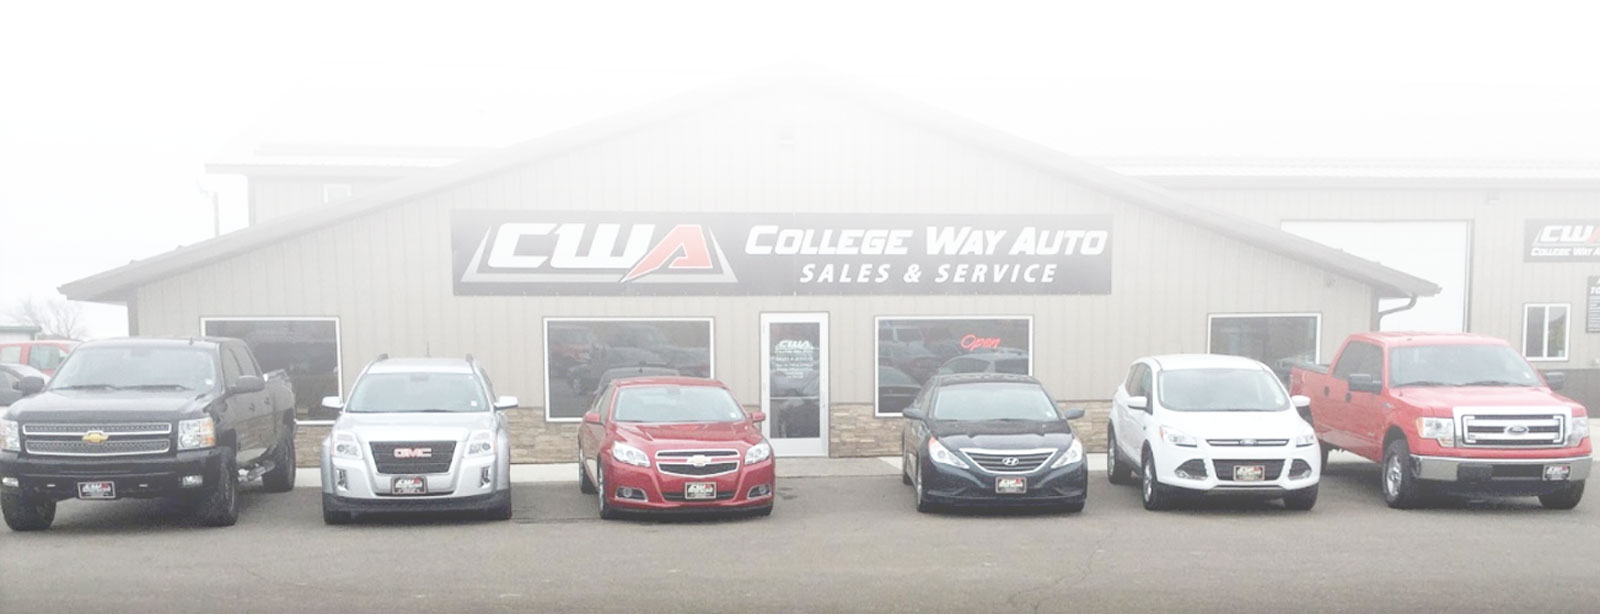 Used Car Dealerships In Mn >> Used Car Sales College Way Auto Sales Service Fergus